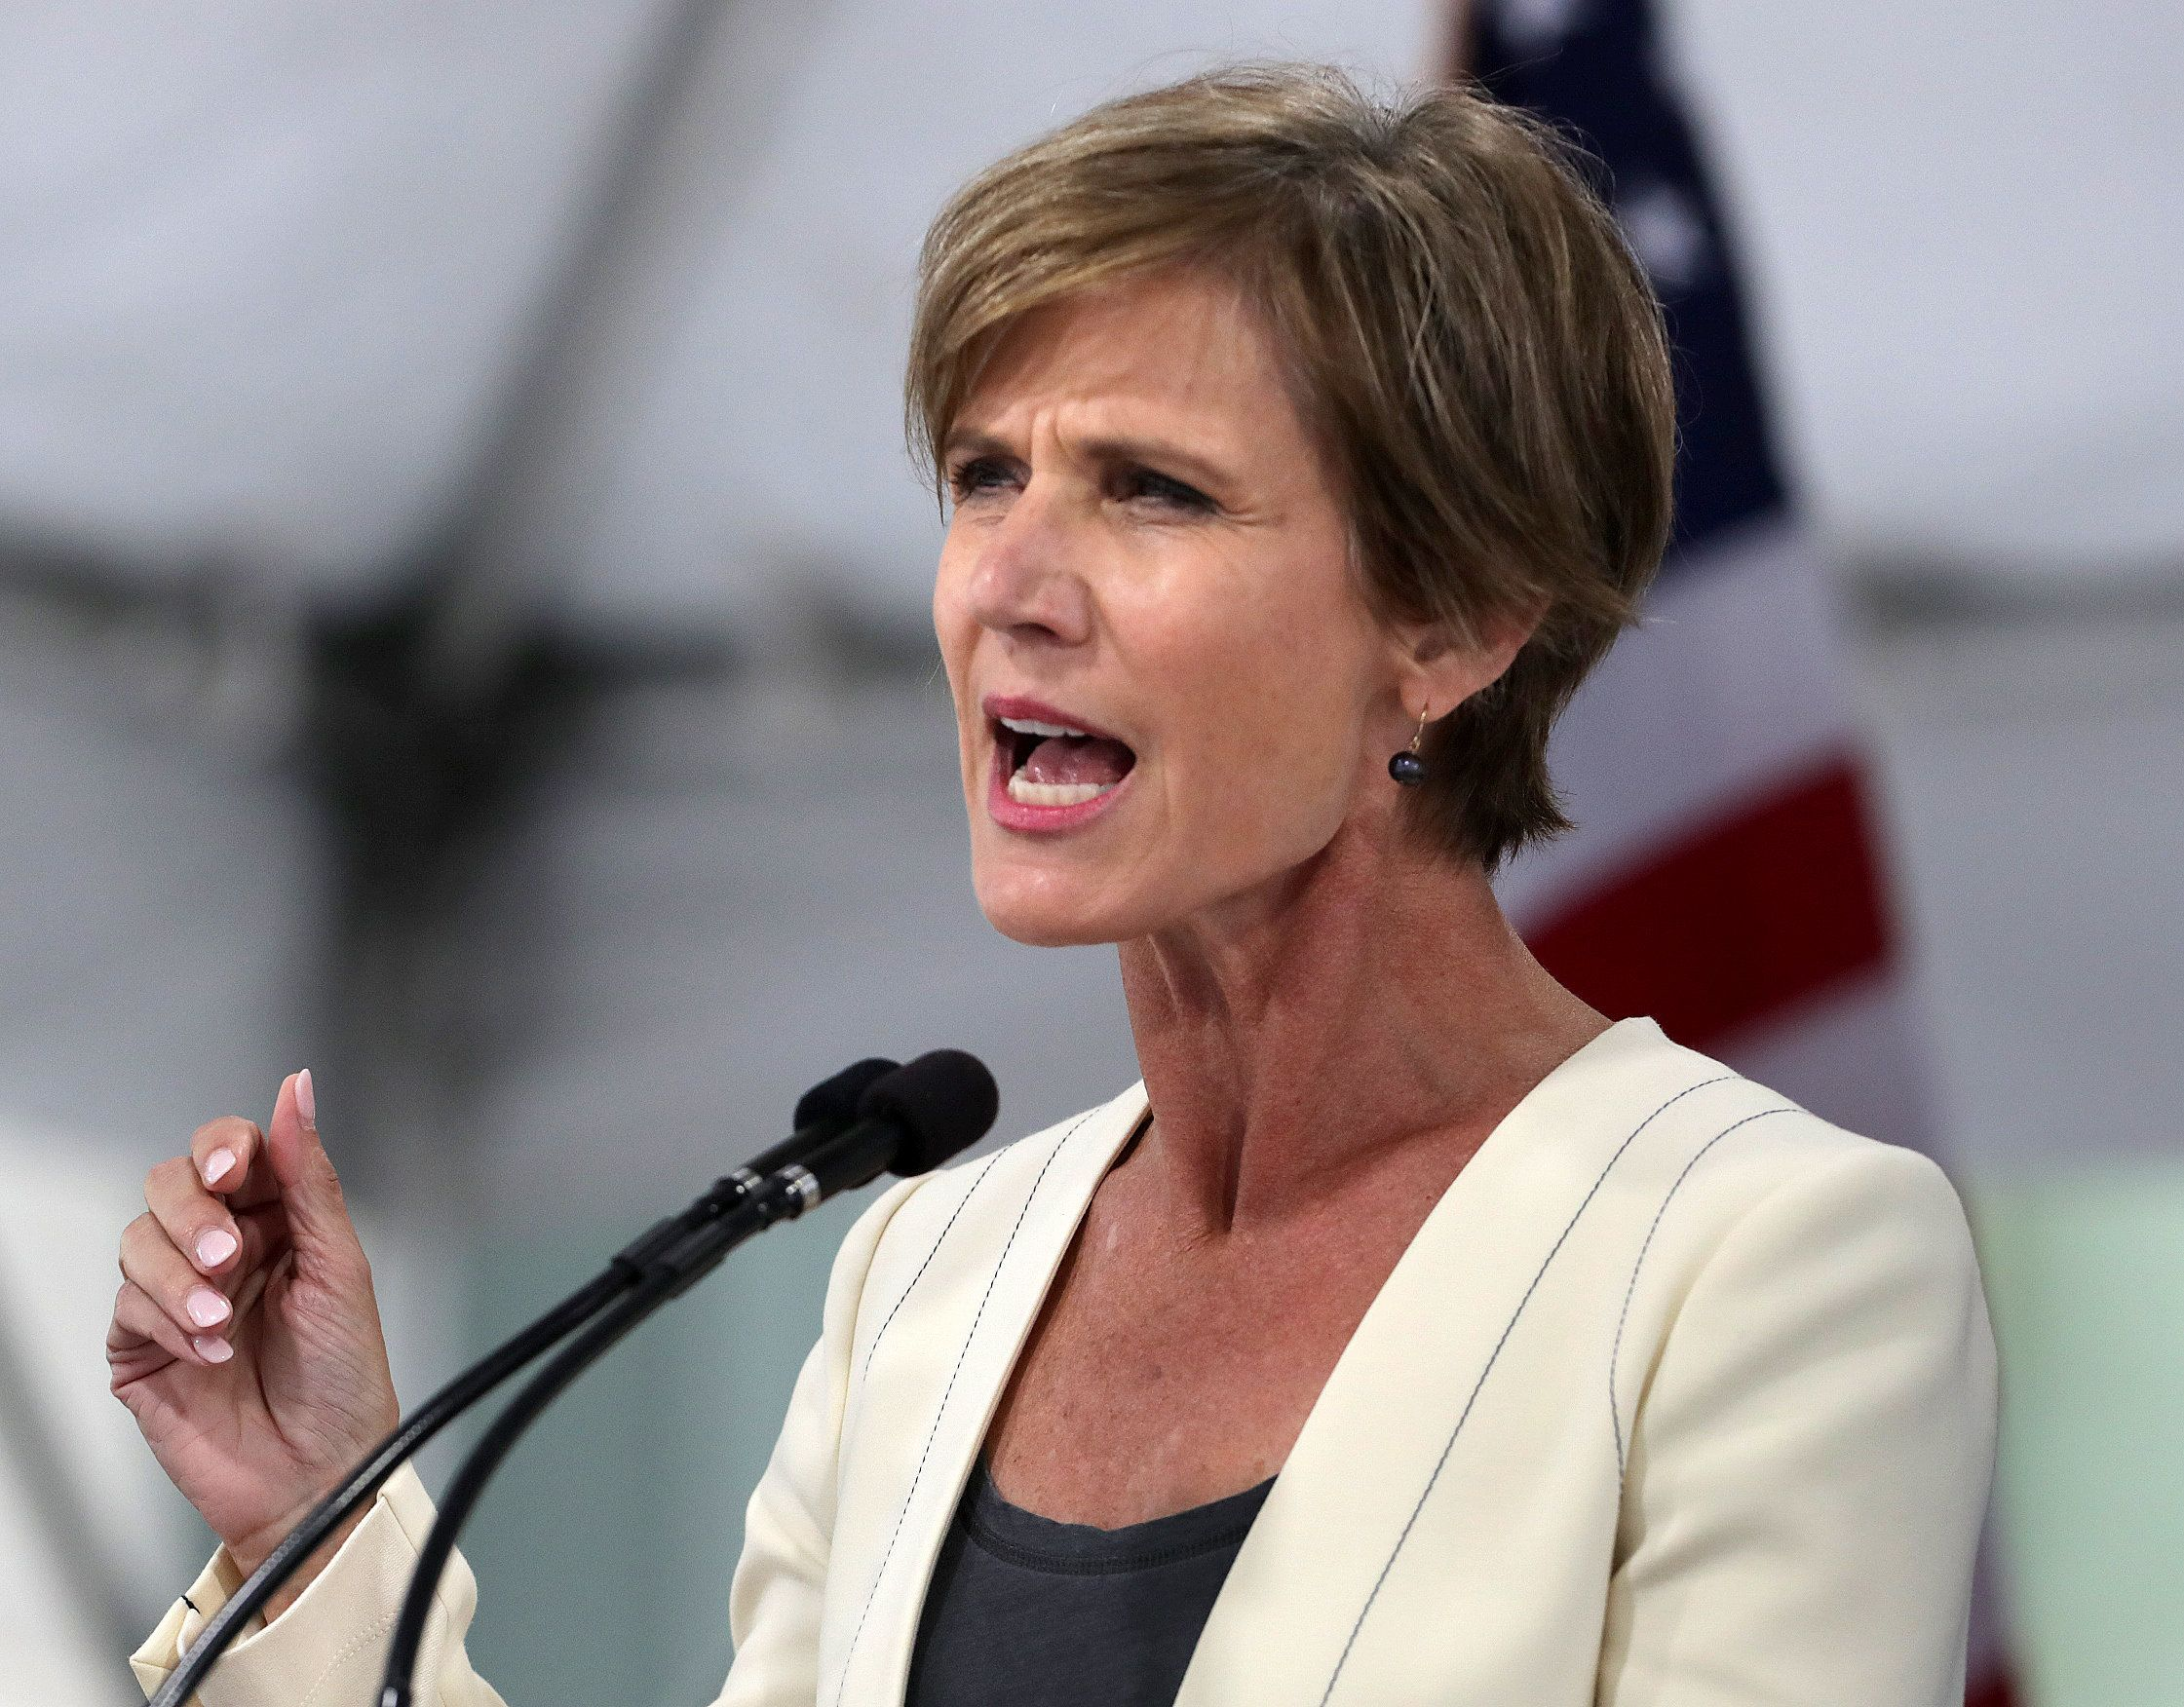 CAMBRIDGE, MA - MAY 24: Former acting US attorney general Sally Yates speaks during the Harvard Law School Class Day celebration at Harvard University in Cambridge, Mass., on May 24, 2017.   (Photo by John Blanding/The Boston Globe via Getty Images)